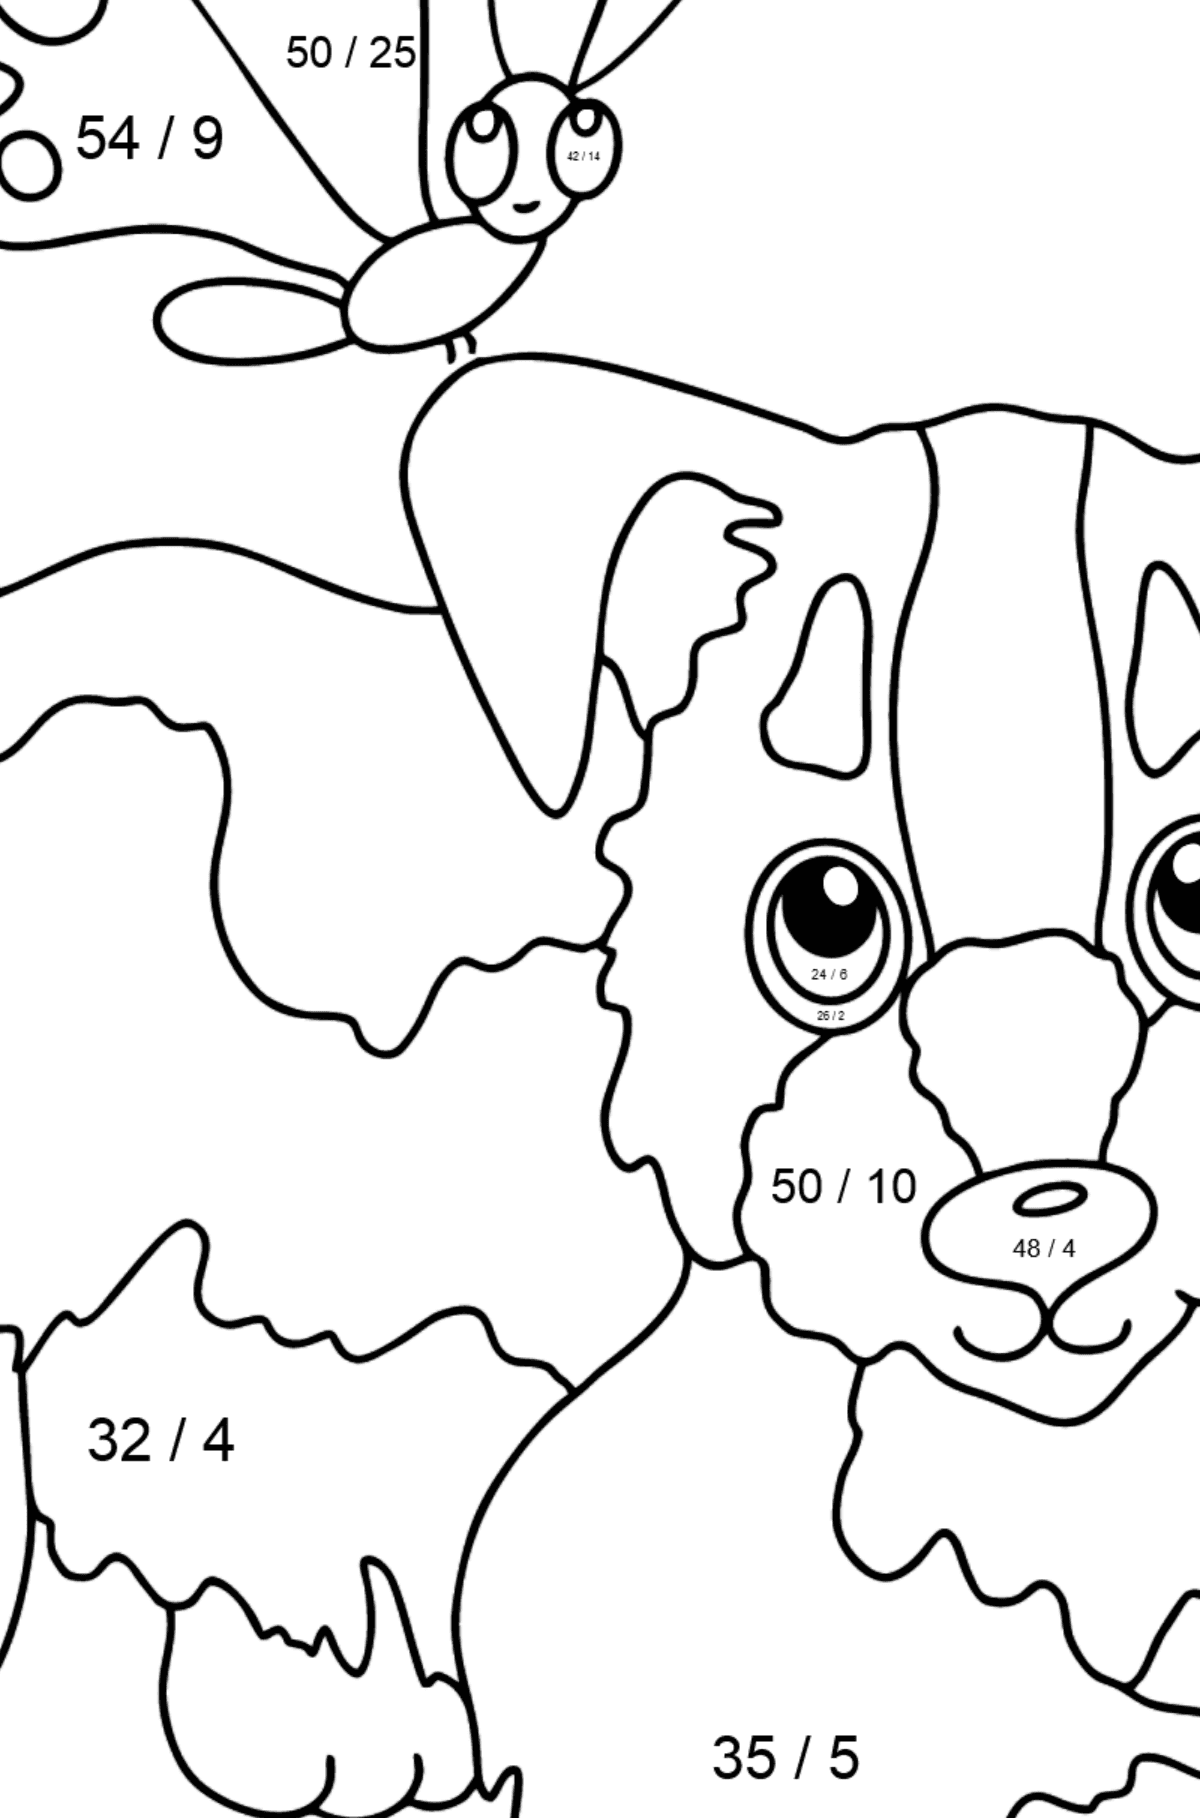 Coloring Page - A Dog is Playing with a Beautiful Butterfly - Math Coloring - Division for Kids